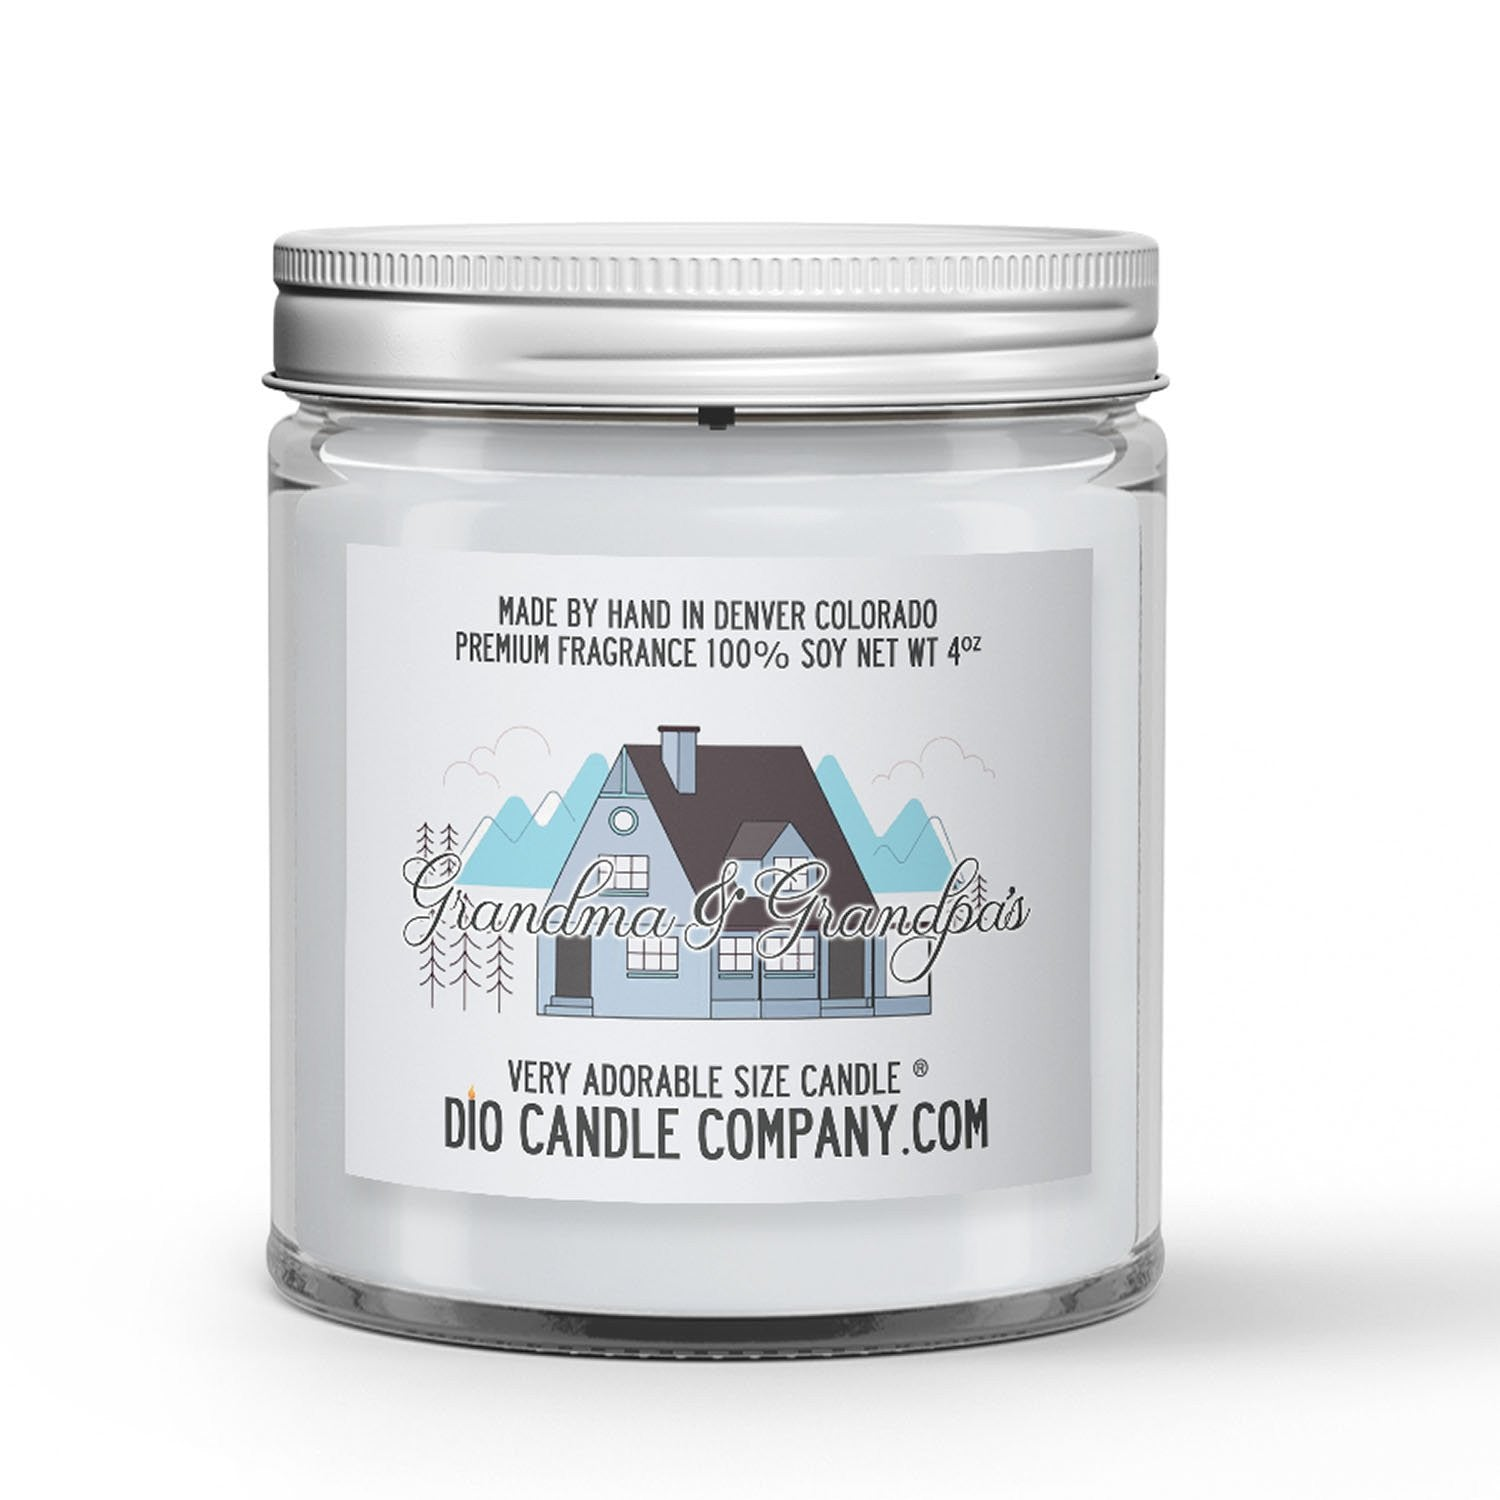 Grandparents House Candle Bar Soap - Aftershave Scented - Dio Candle Company